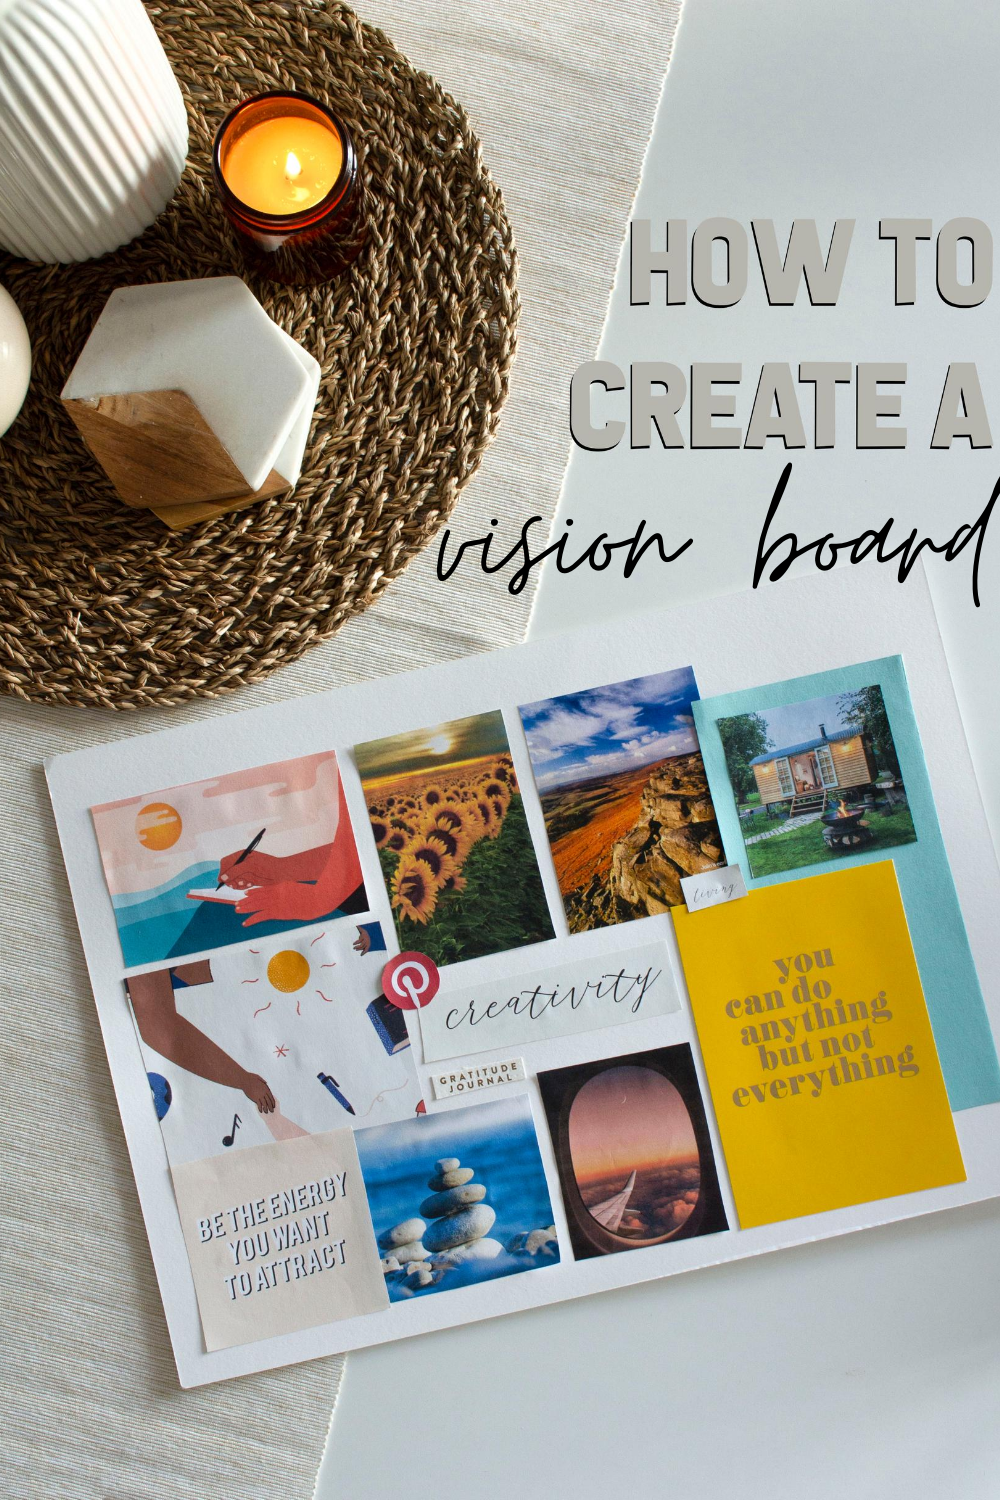 vision board complete in flatlay style photo